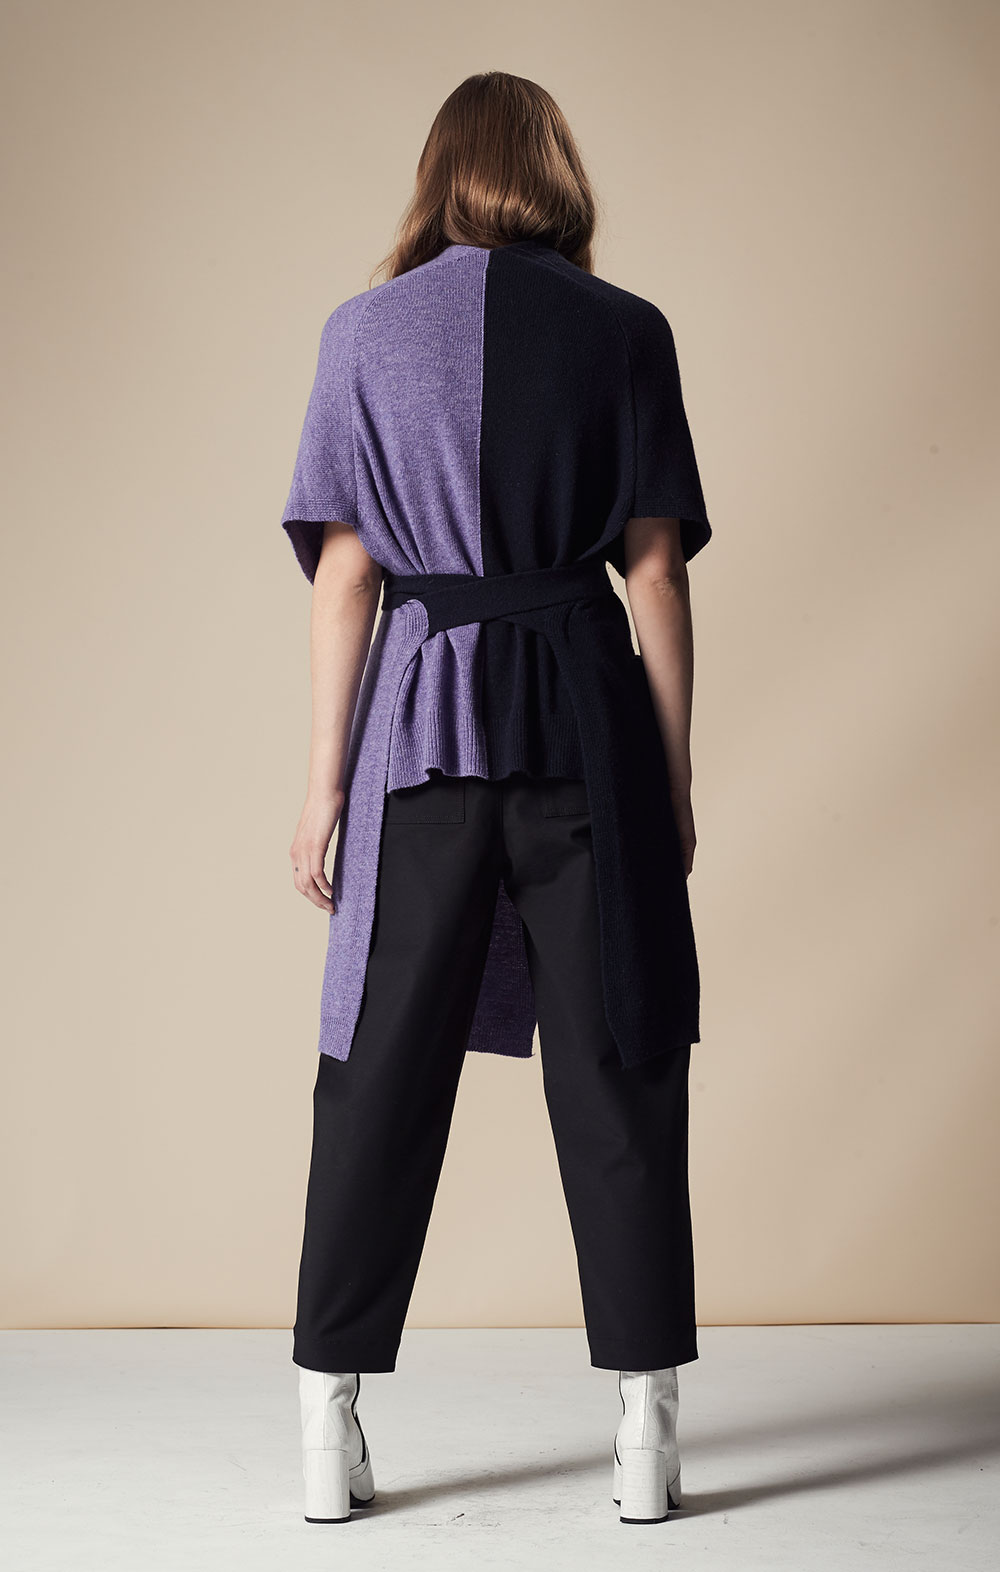 Cashmere-blend Color Block Vest FBK097-NVY/PUR Pocket Detail Cropped Pants FBP030-BLK